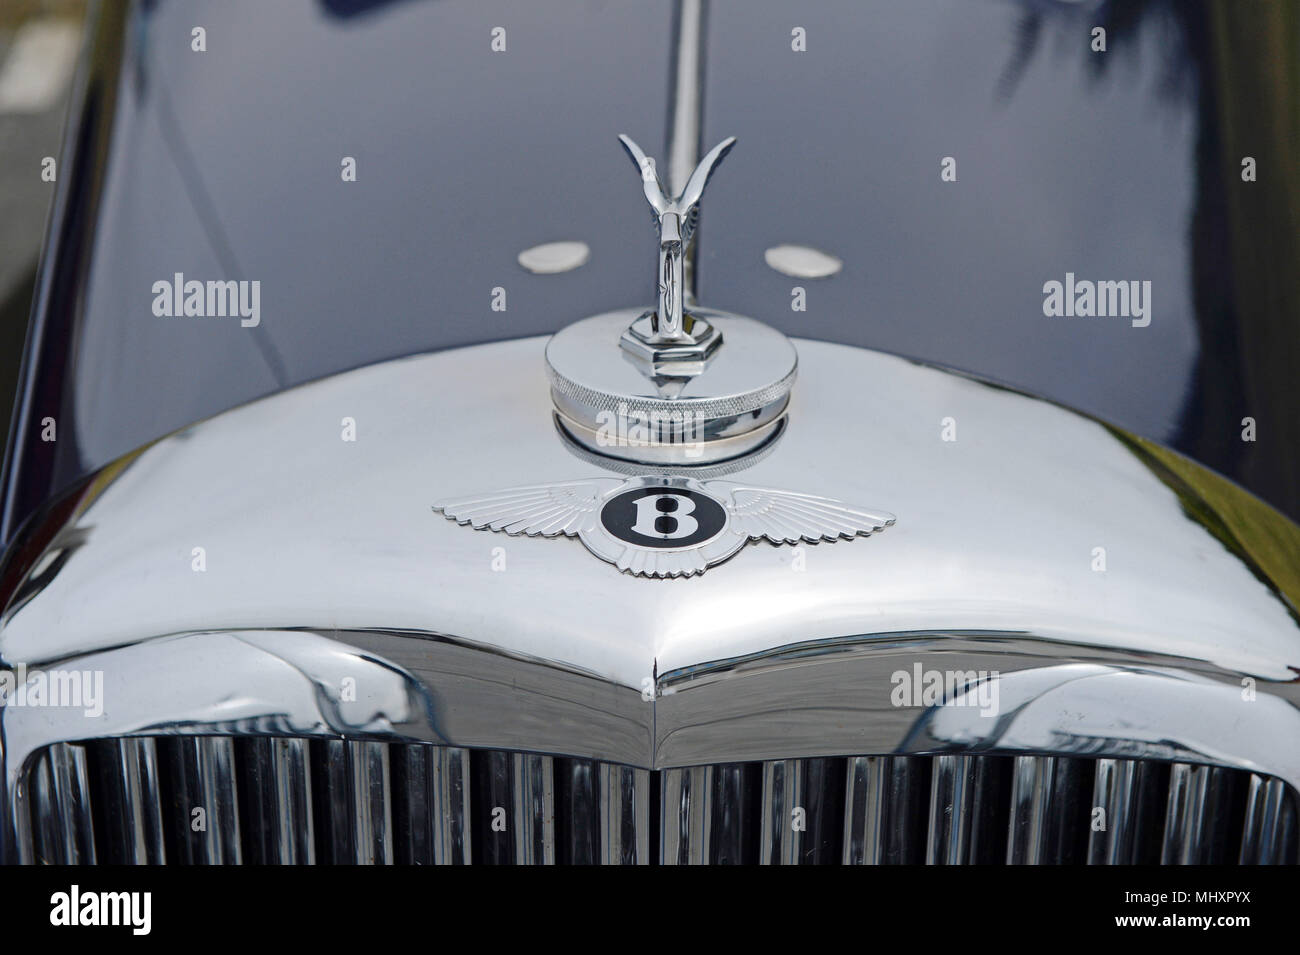 Bentley Emblem High Resolution Stock Photography And Images Alamy